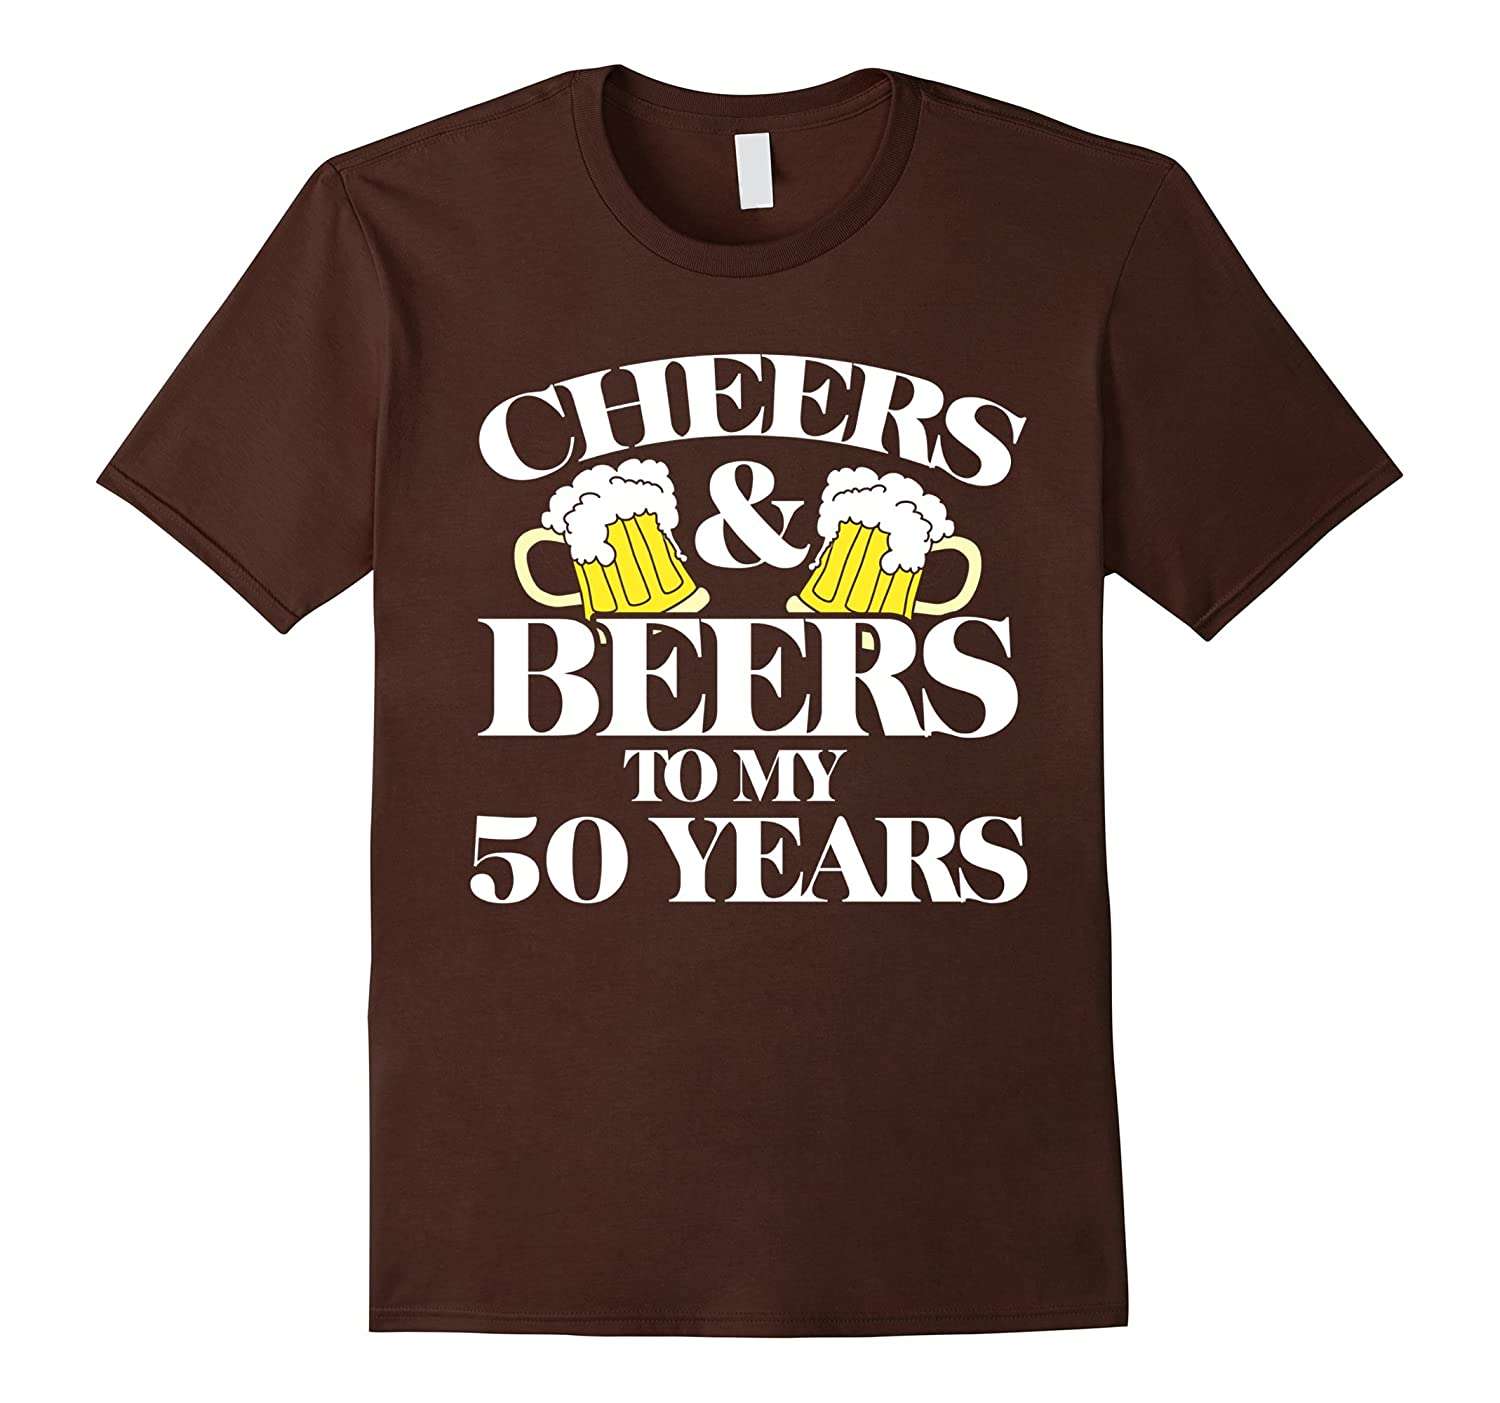 Cheers And Beers To My 50 Years Shirt 50th Birthday Party CL